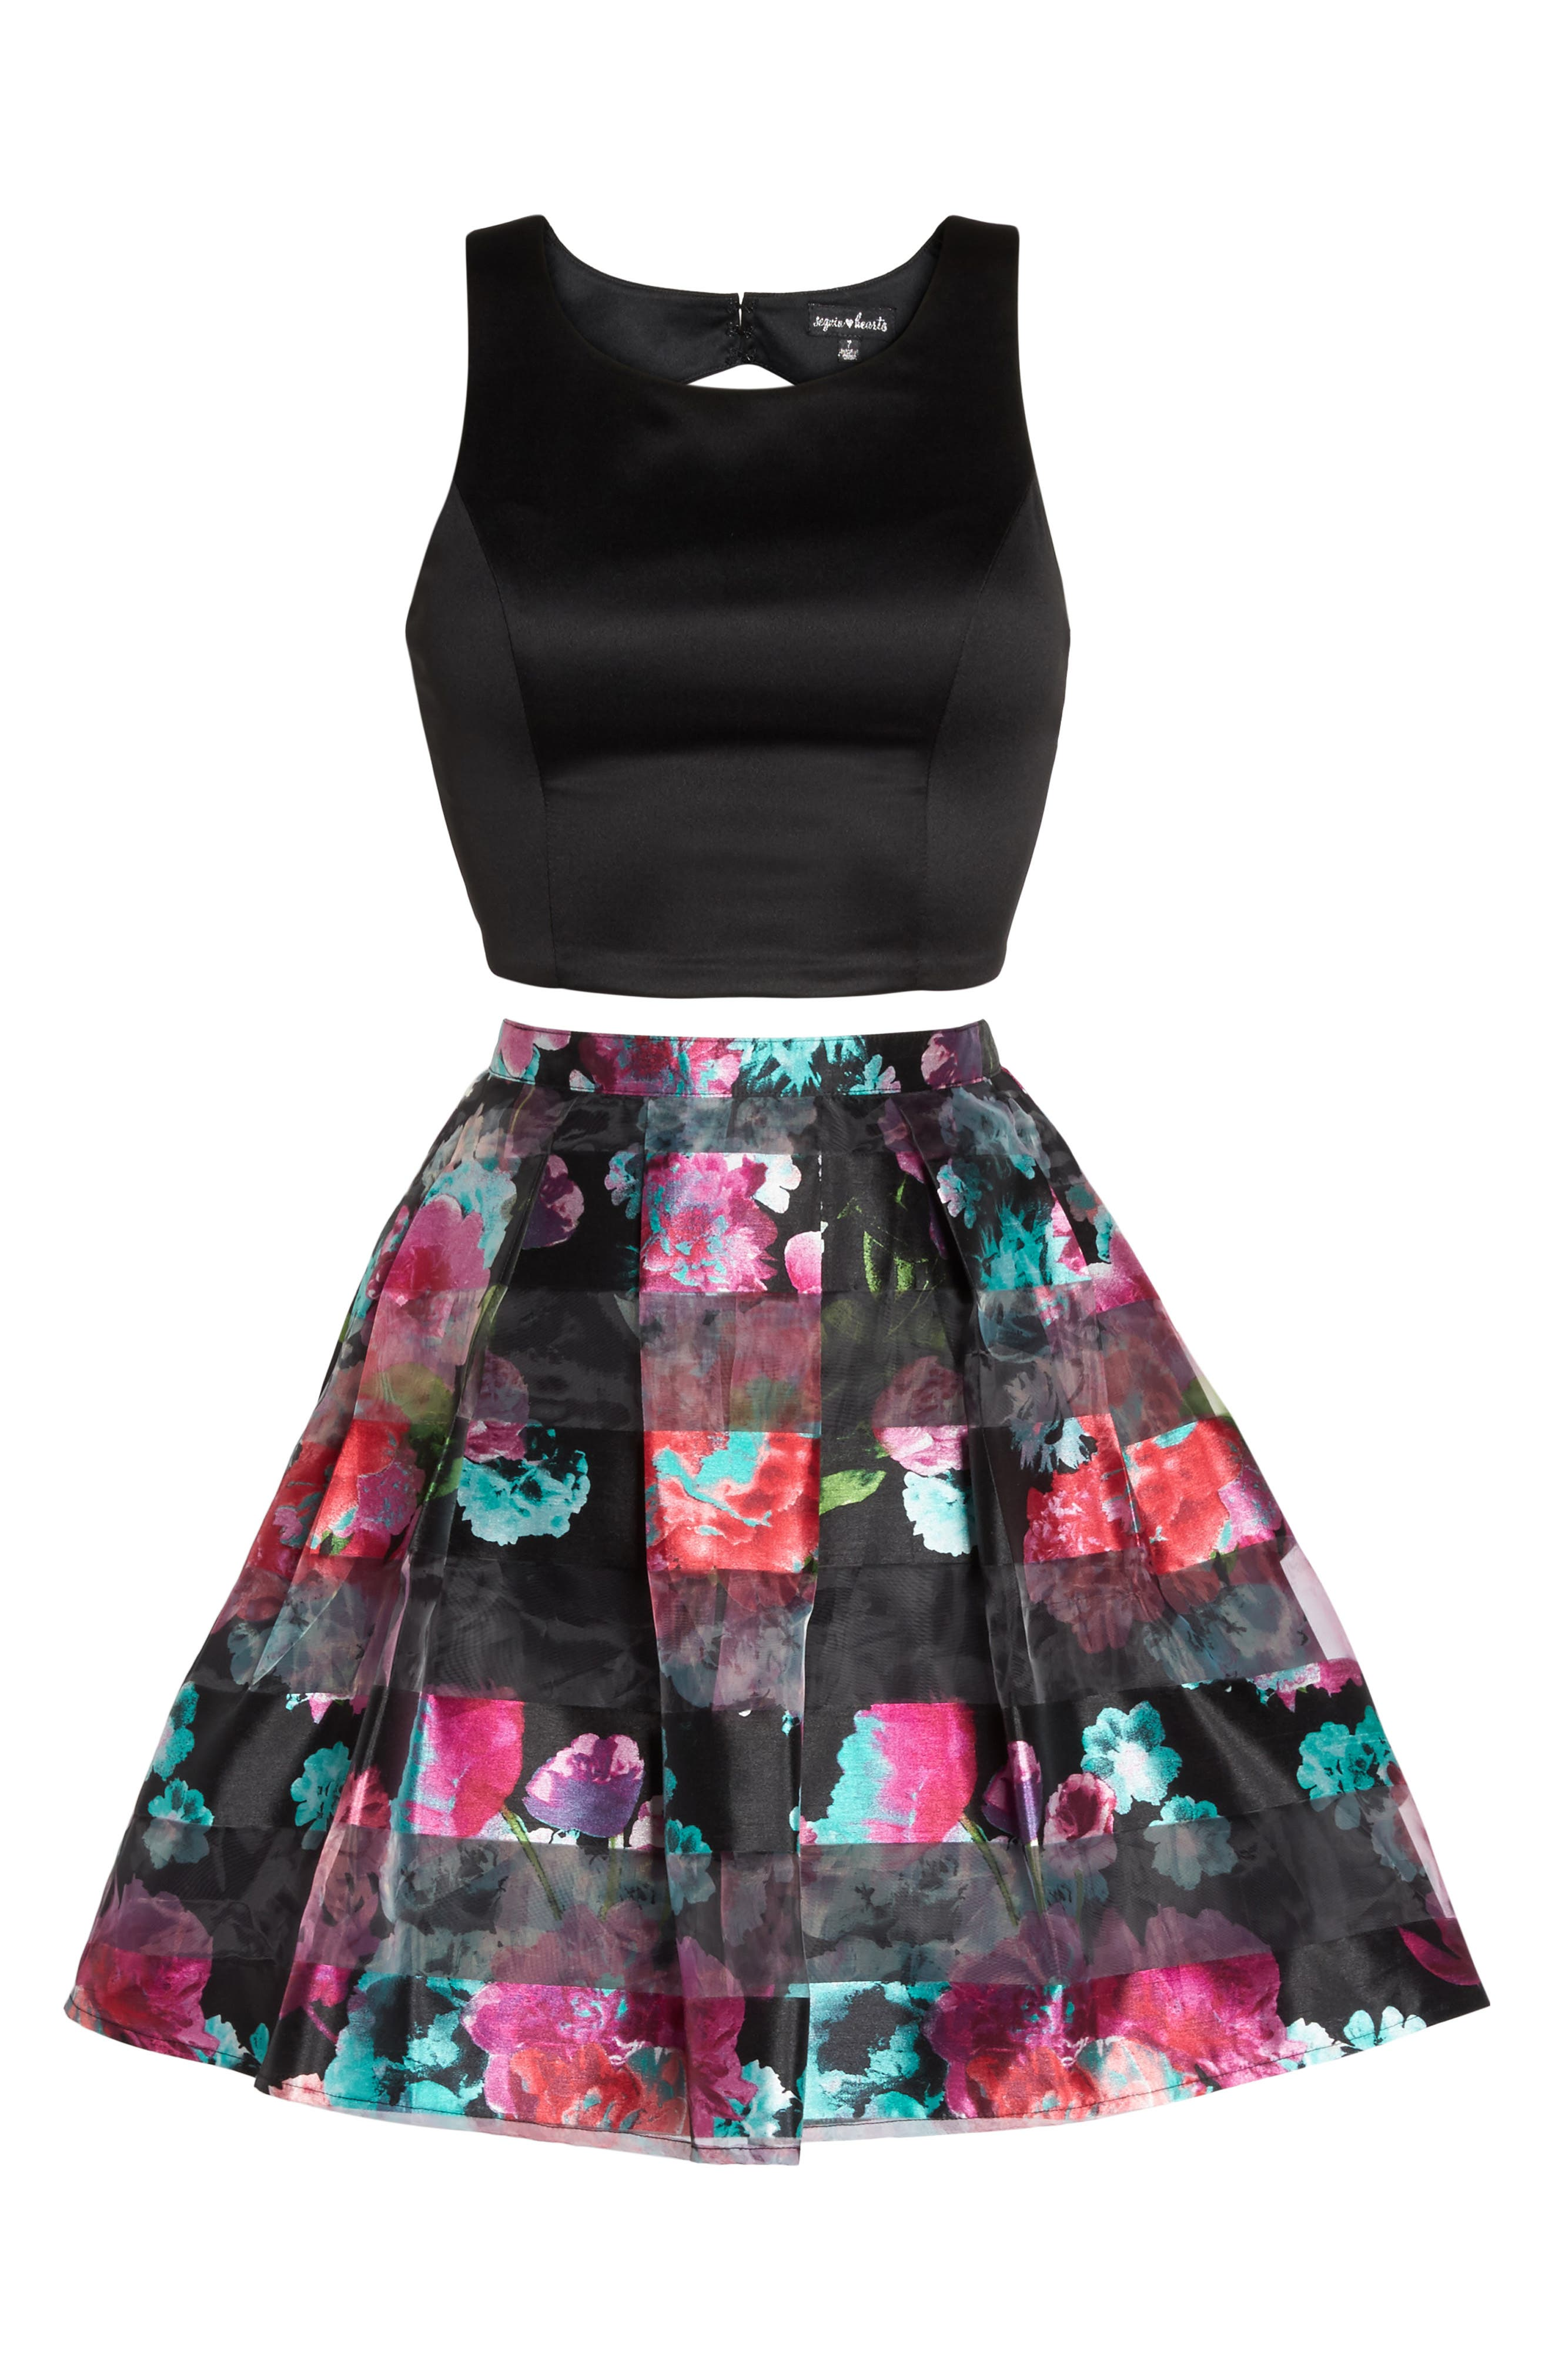 Printed Shadow Skirt Two-Piece Fit & Flare Dress,                             Alternate thumbnail 6, color,                             005